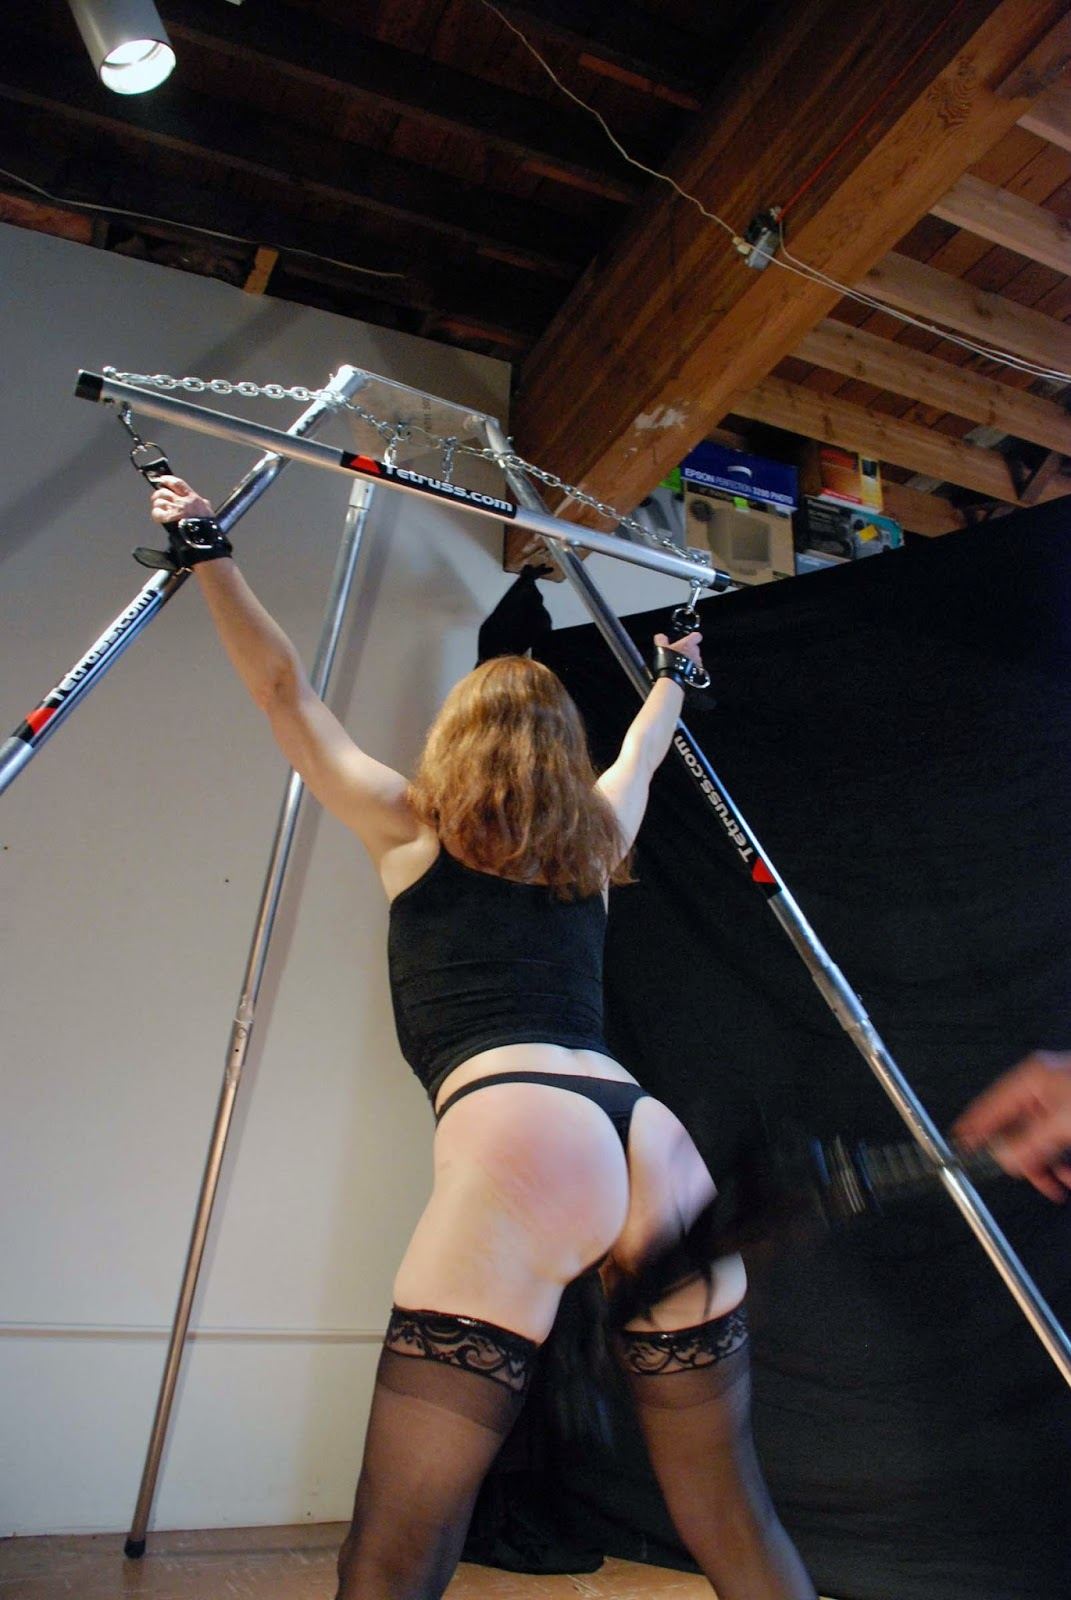 flogging for emotional release